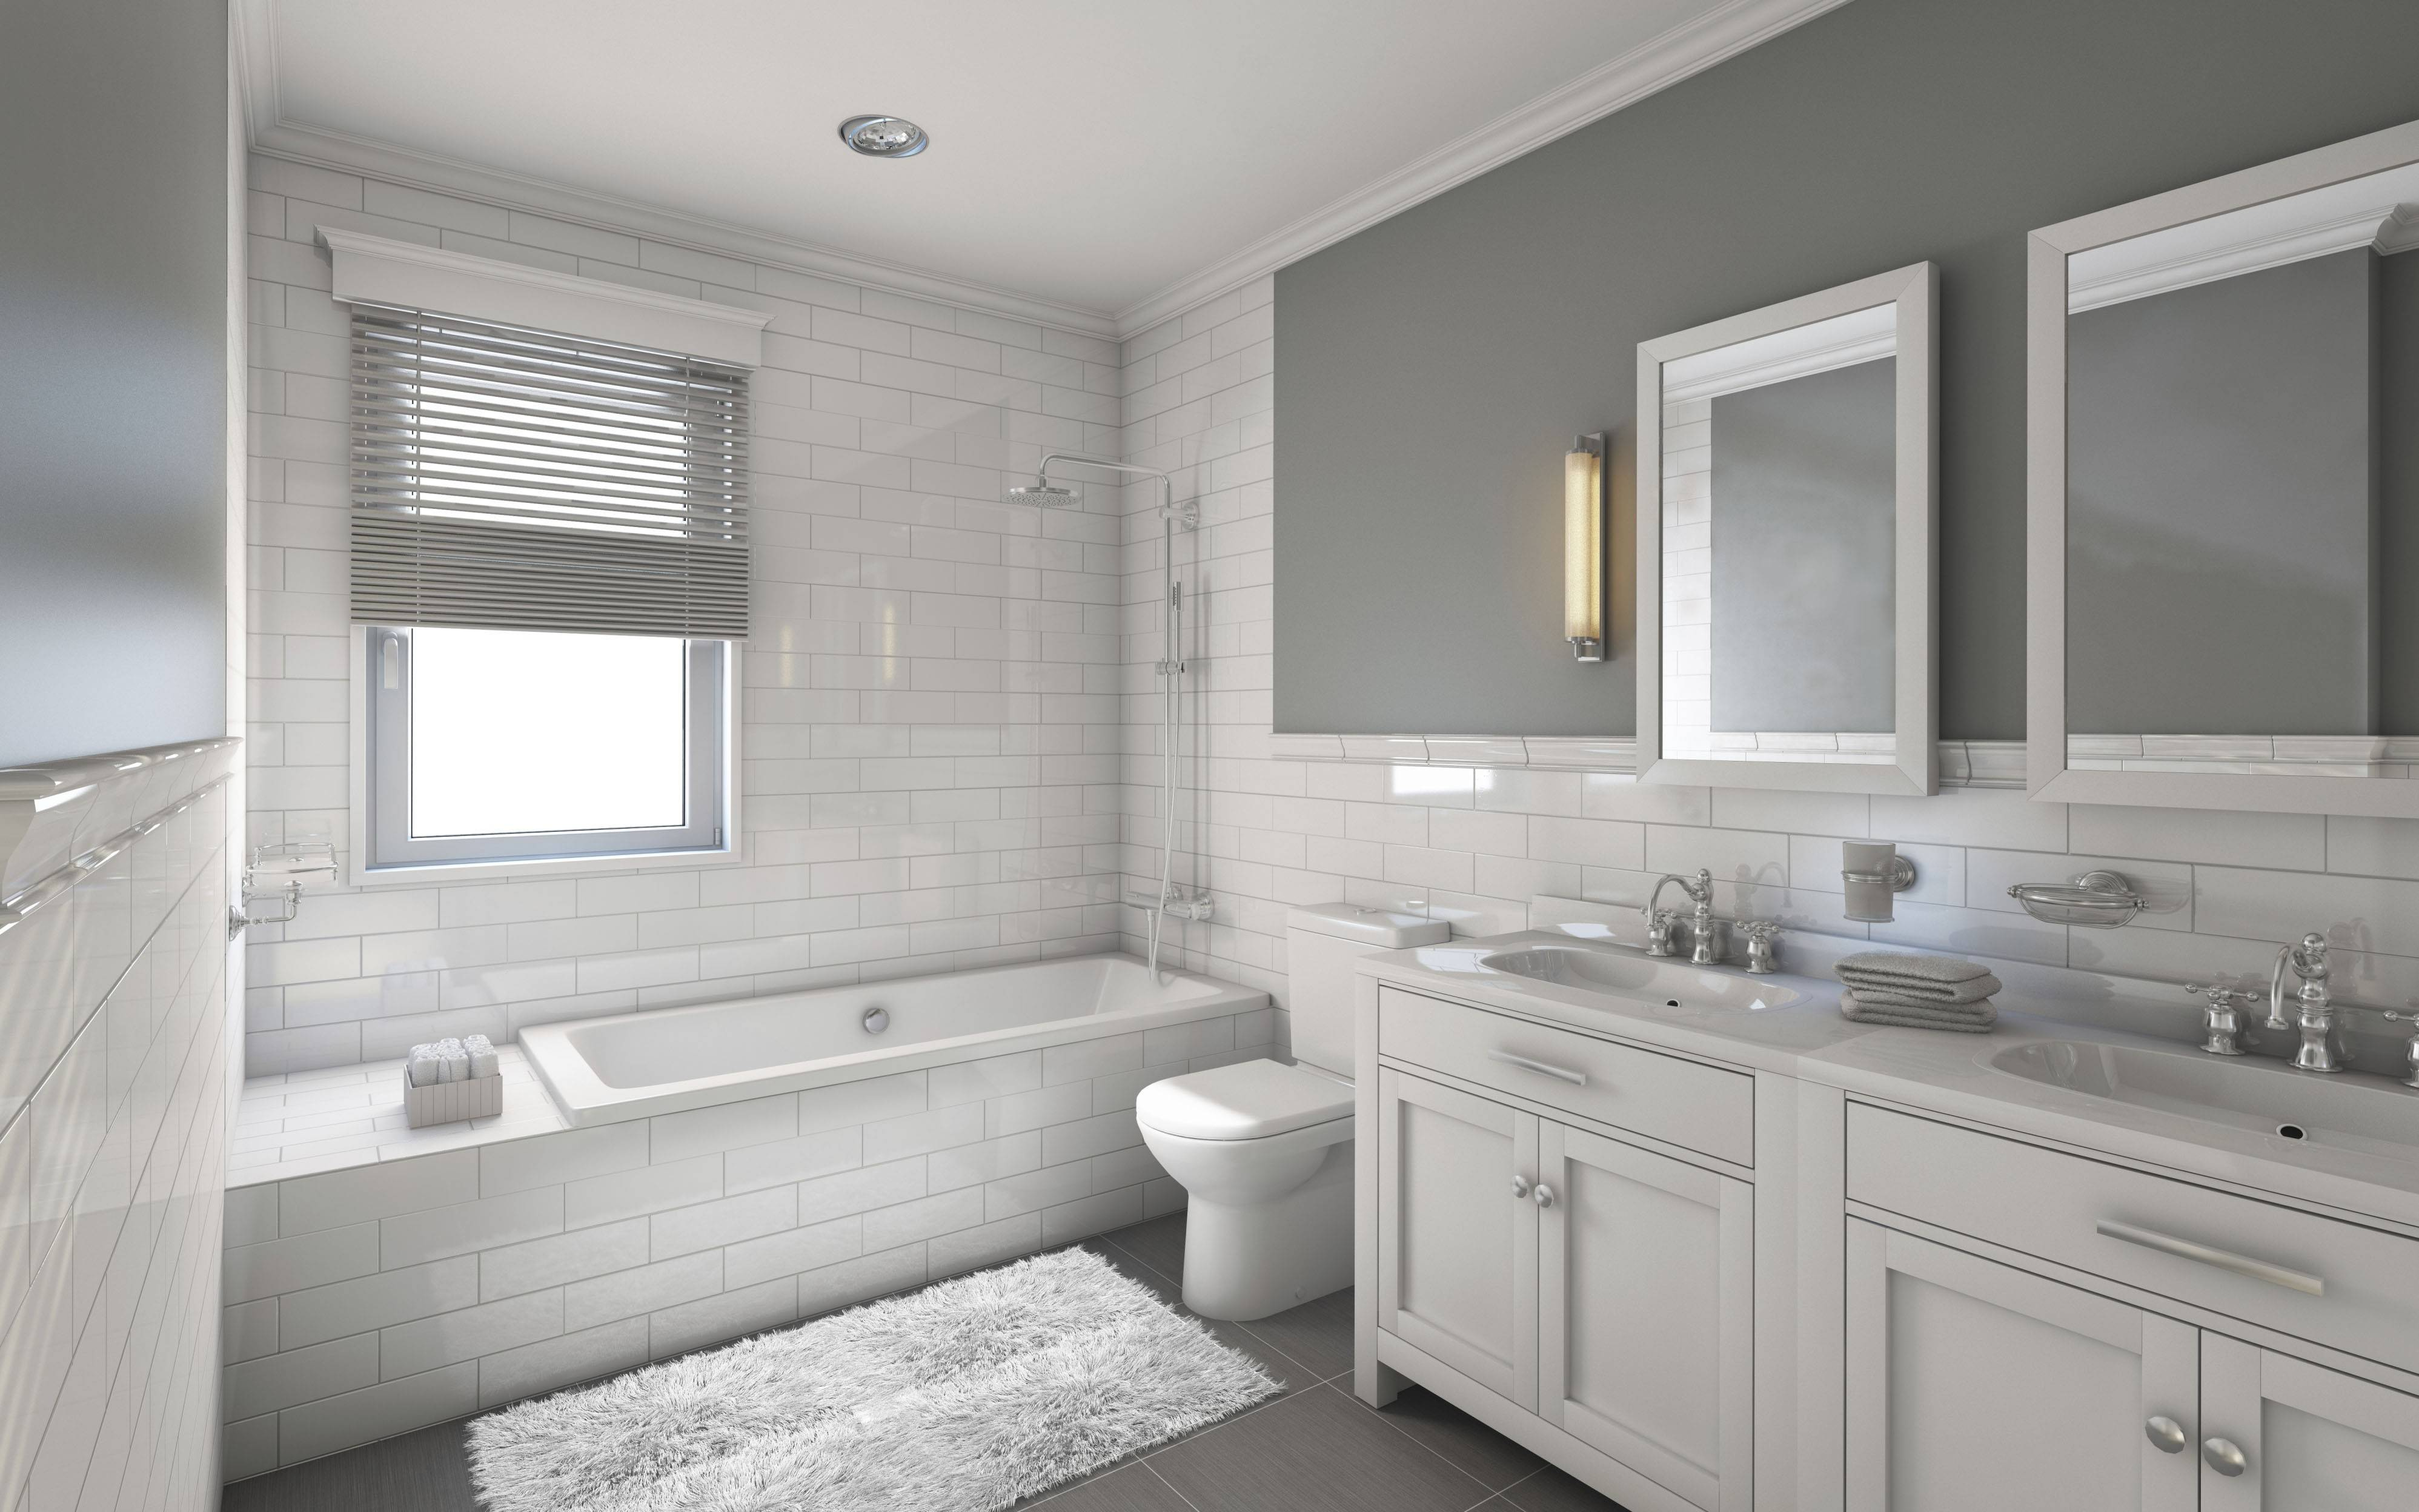 White and gray is a popular color choice for the modern bathroom.